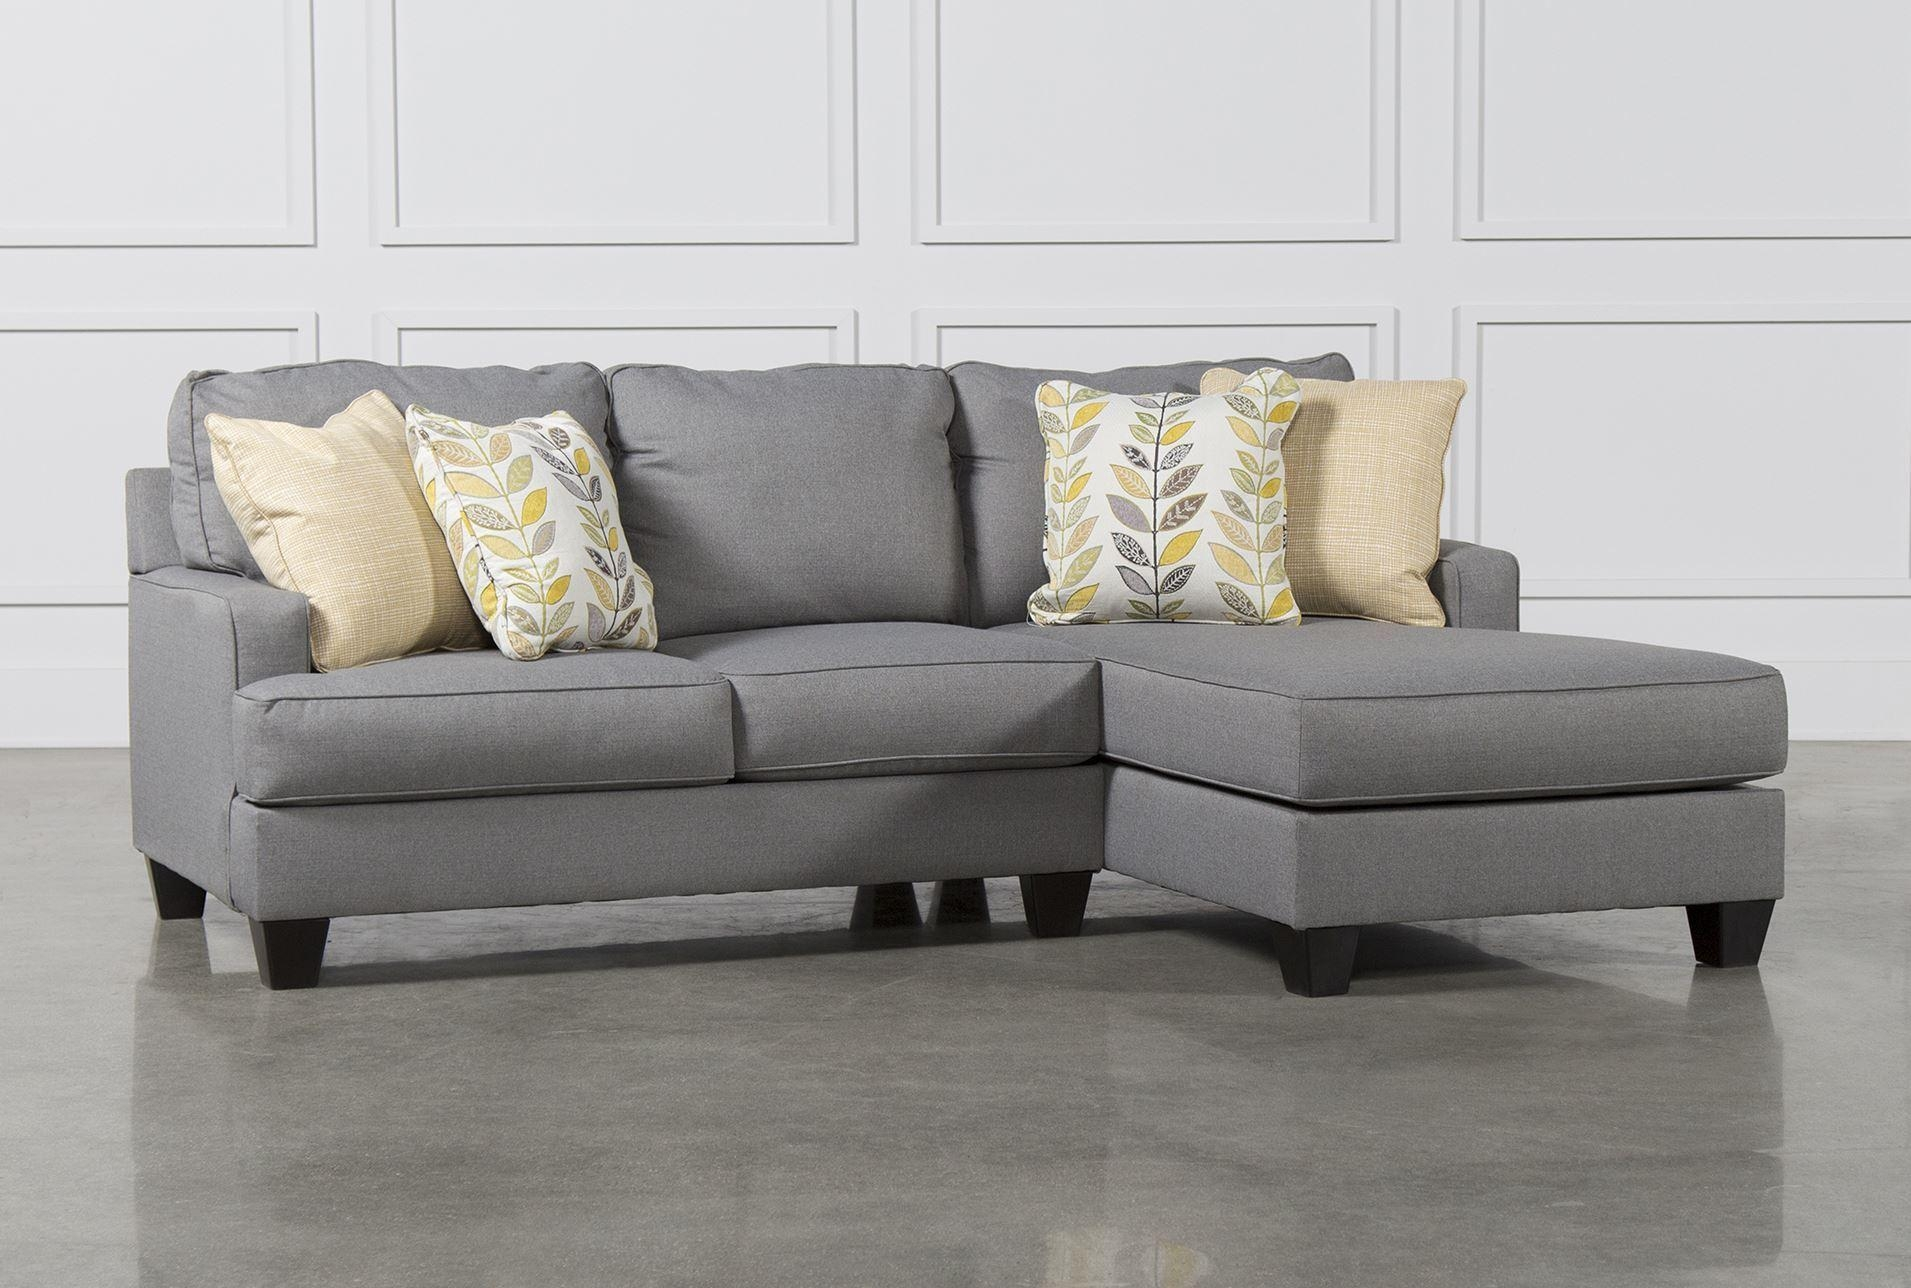 Furniture: Sectional Sofas Costco | Sectional Couches Costco With Regard To Small 2 Piece Sectional Sofas (Image 10 of 23)